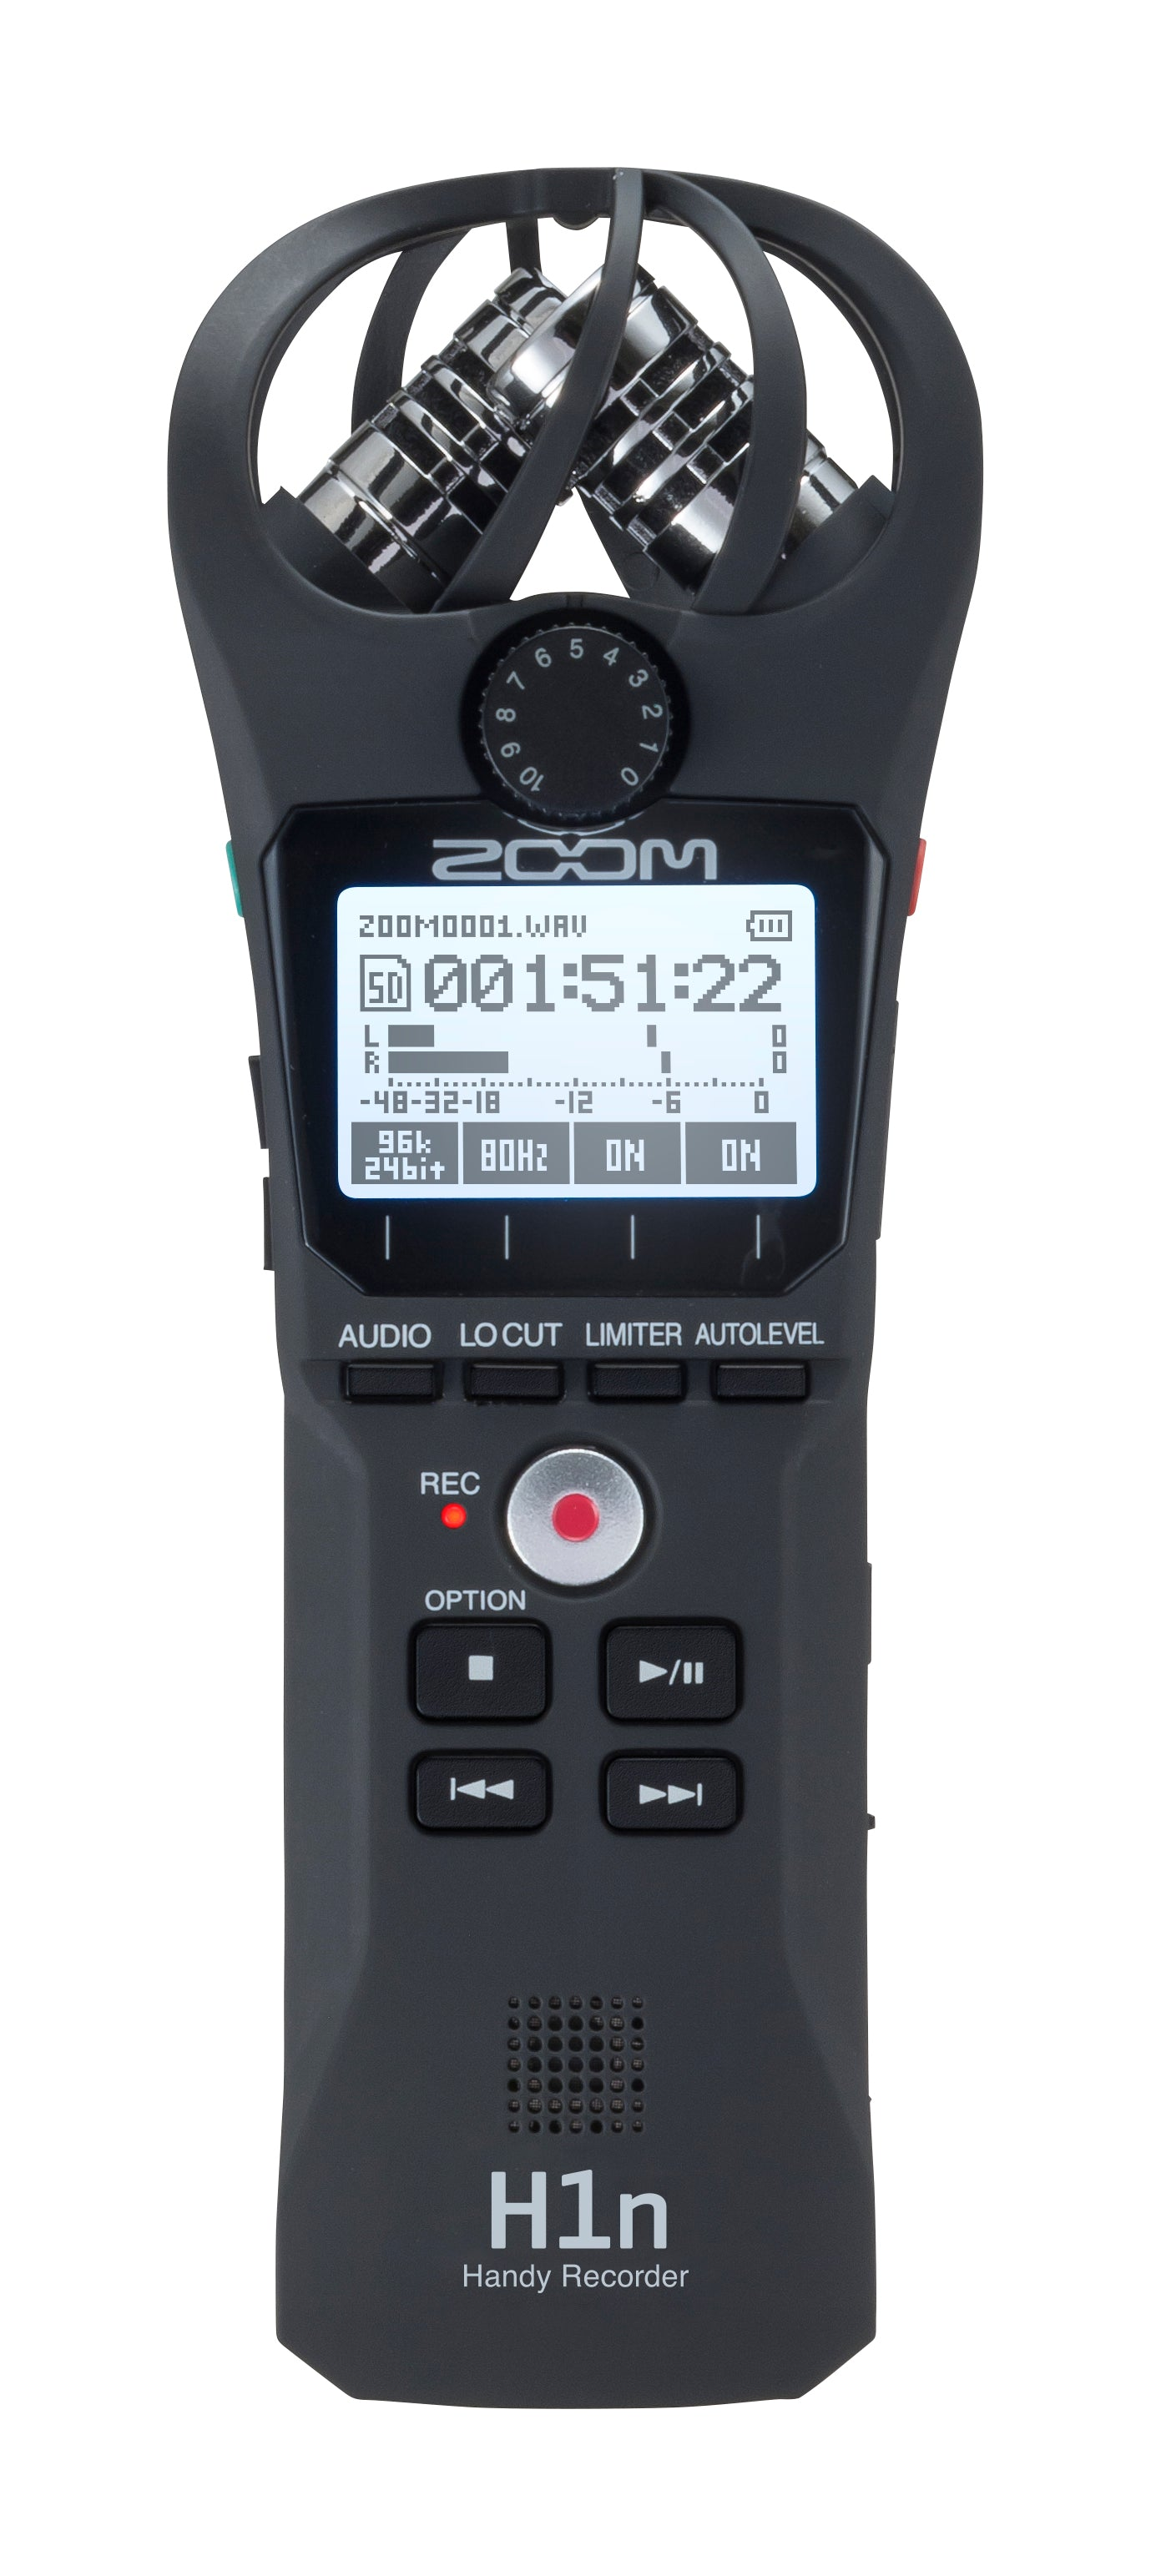 Zoom H1n Portable Recorder, Onboard Stereo Microphones, Camera Mountable, Records to SD Card, Compact, USB Microphone, Overdubbing, Dictation, For Recording Music, Audio for Video, and Interviews - 305broadcast